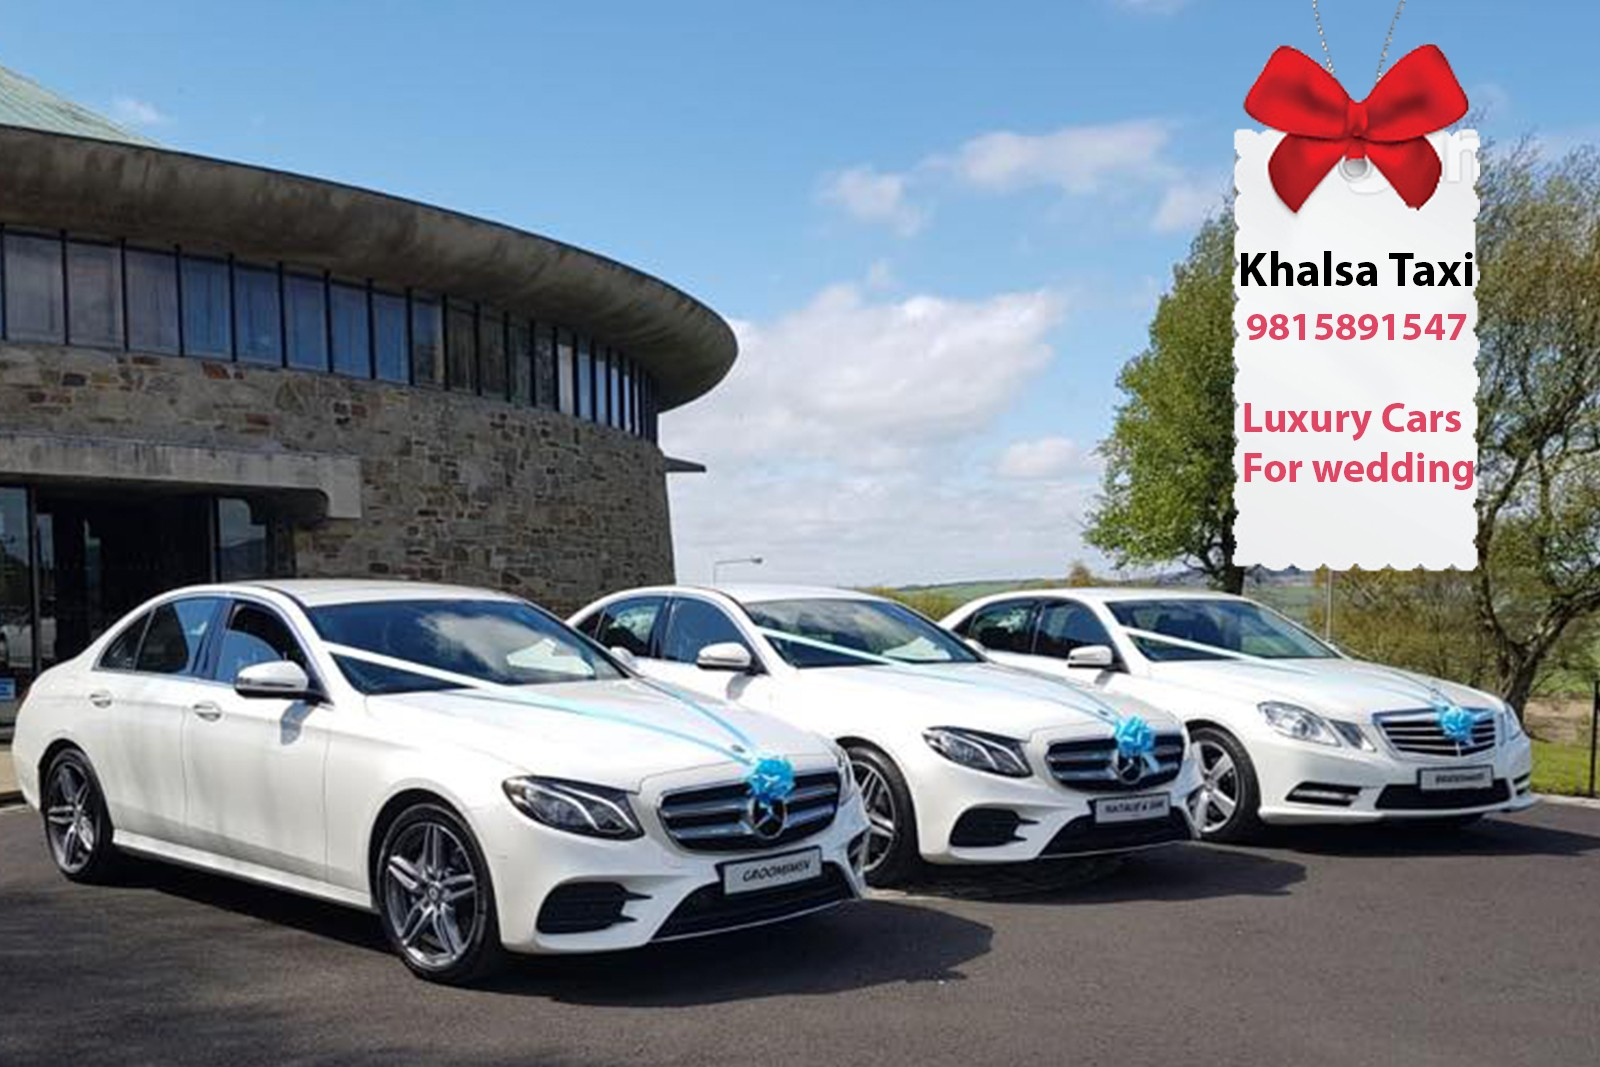 Book Online Luxury Car For Wedding And Luxury Car Hire For Marriage